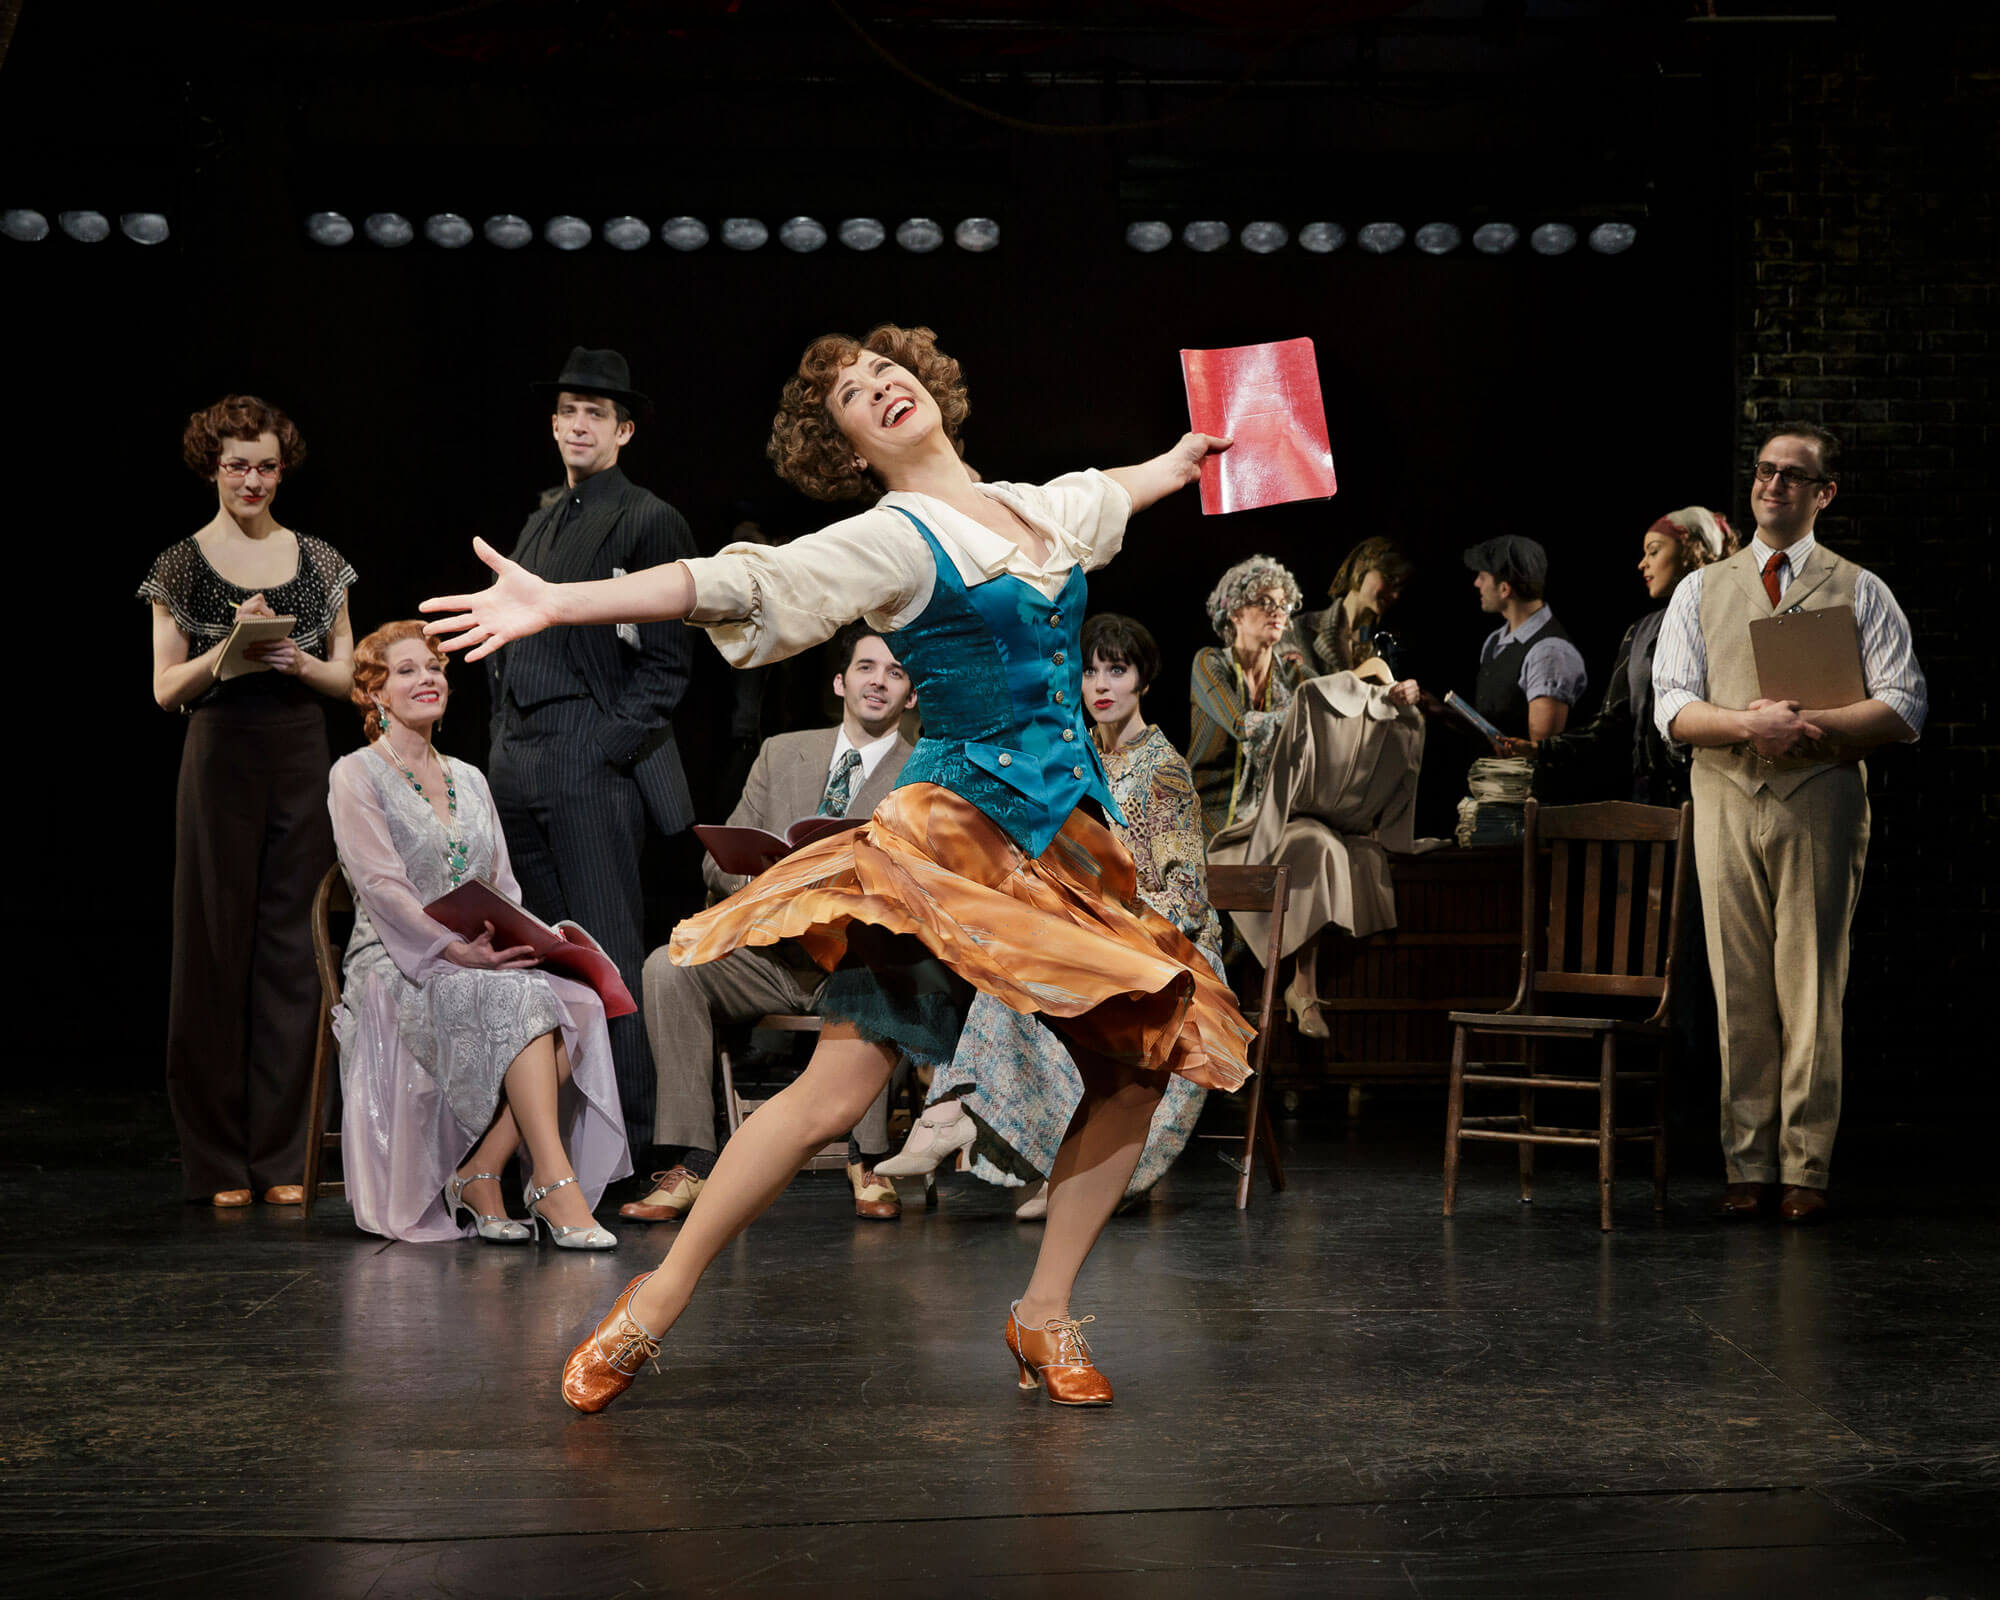 """Eden (Karen Ziemba) joyfully sings """"There's a New Day Comin'! with arms wide open and skirt twirling from a spin of joy!"""